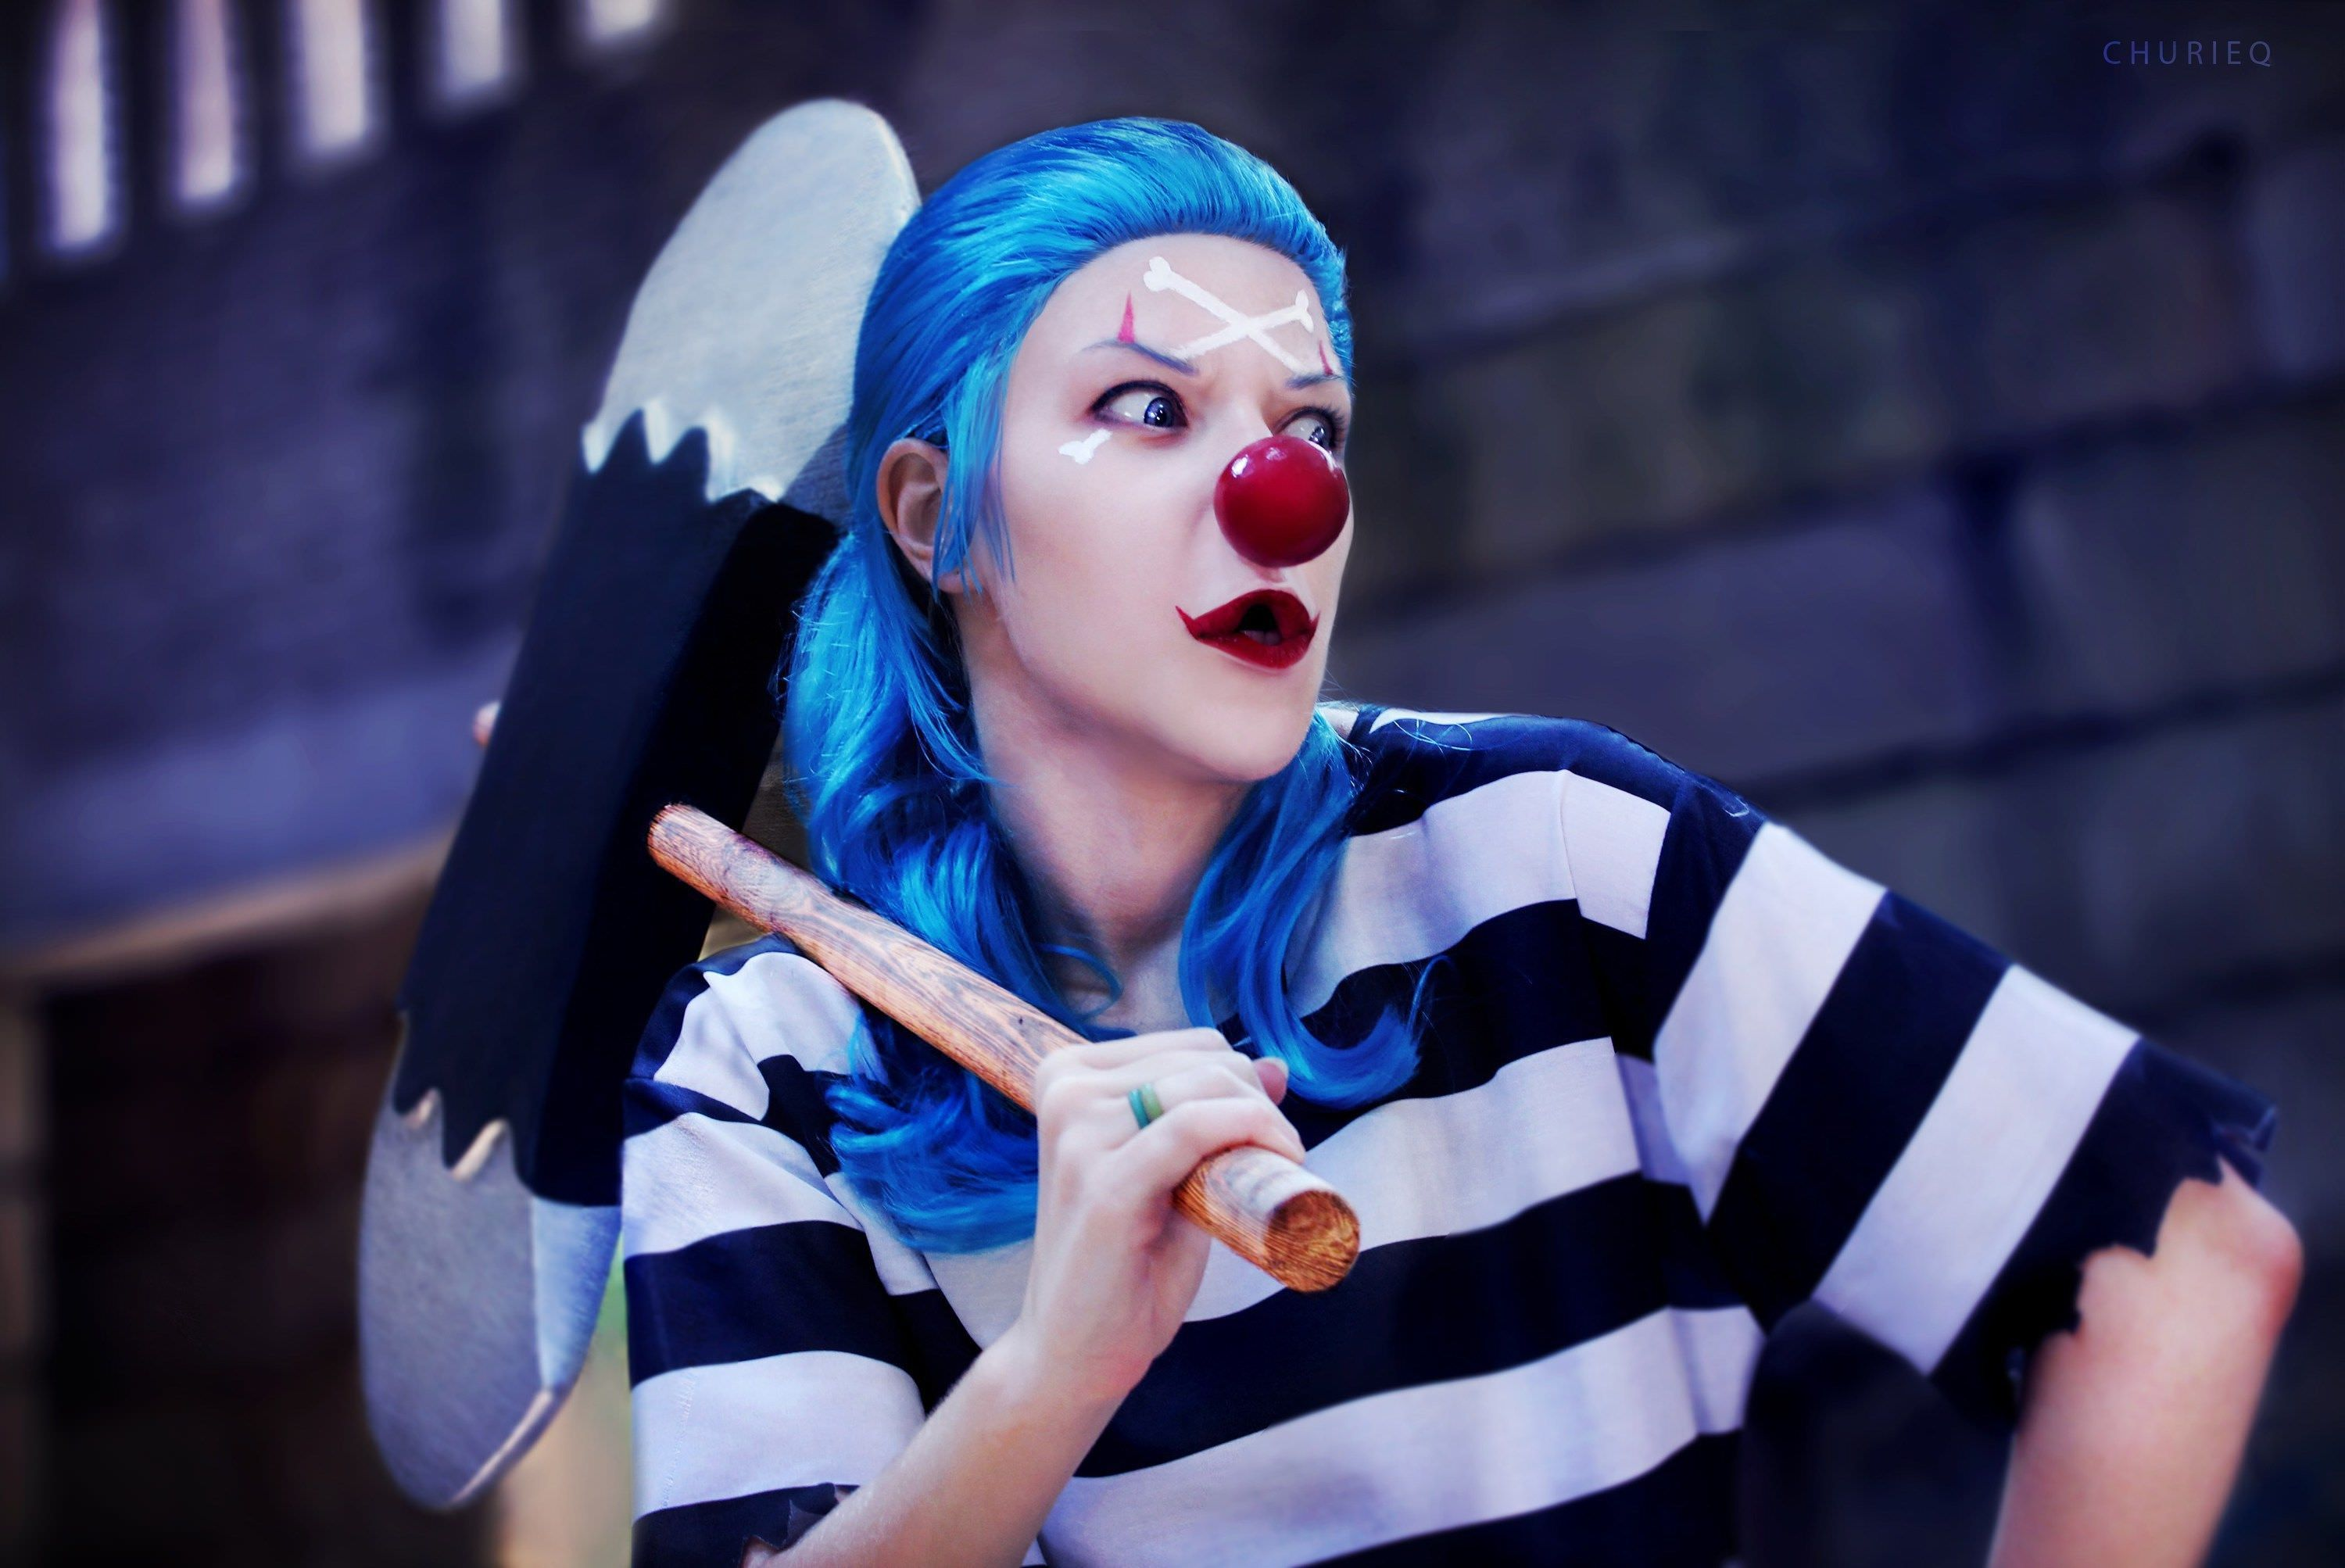 Buggyu00a0, One piece cosplay, Cosplay, One piece